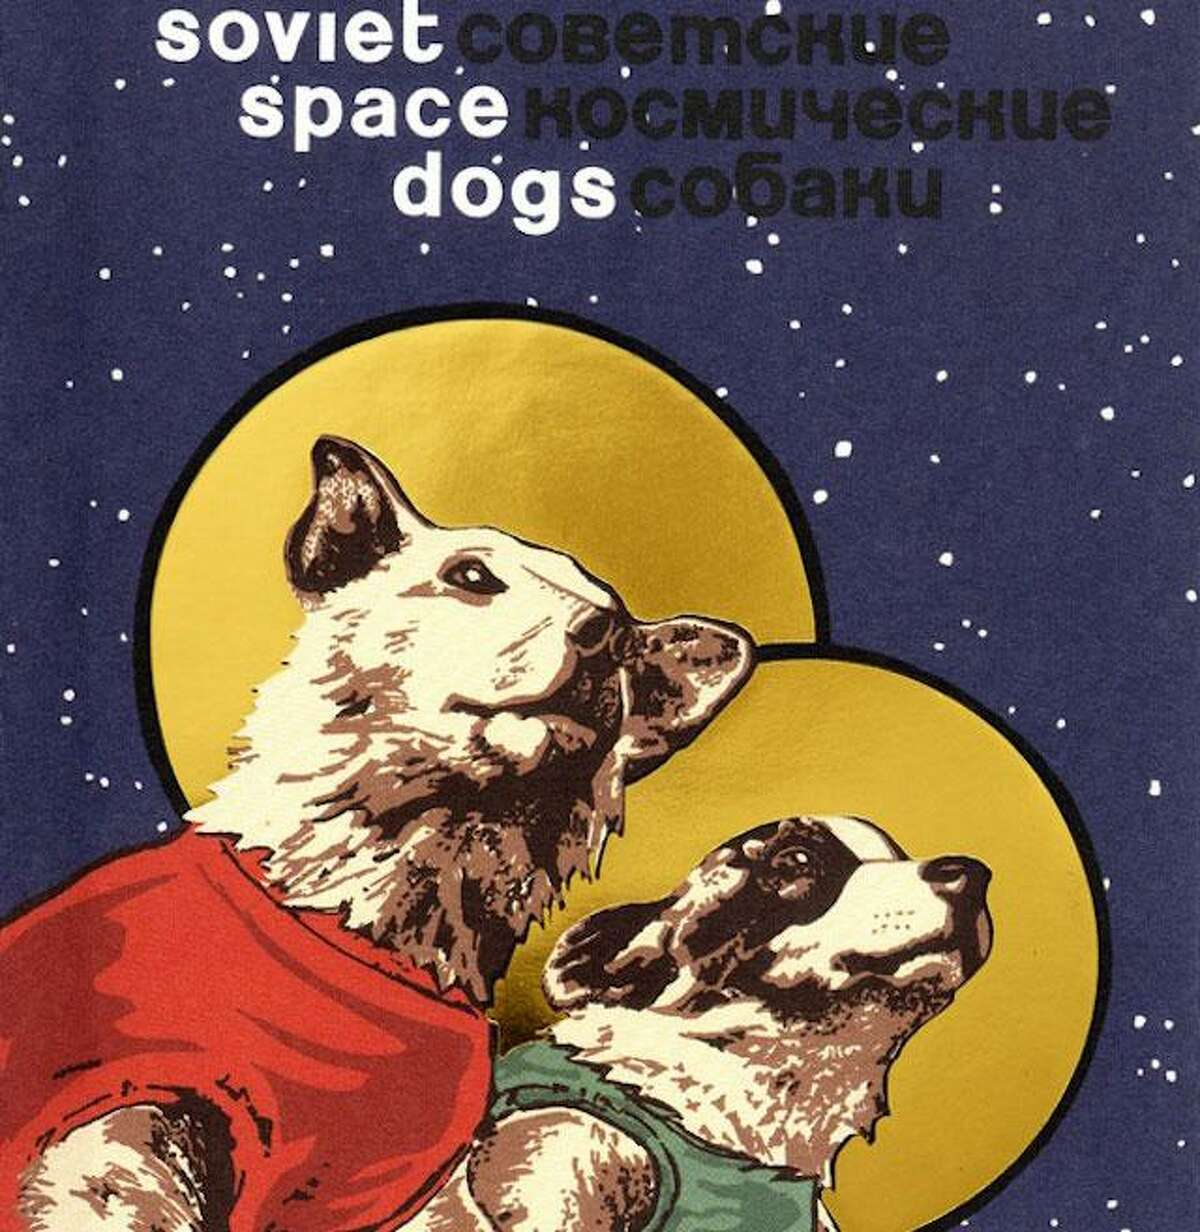 """Cover of '""""Soviet Space Dogs"""" by Olesya Turkina. Turkina is speaking at the Bruce Museum on March 13, 2018 as part of the """"Hot Art in a Cold War: Insections of Art and Science in the Soviet Era."""""""